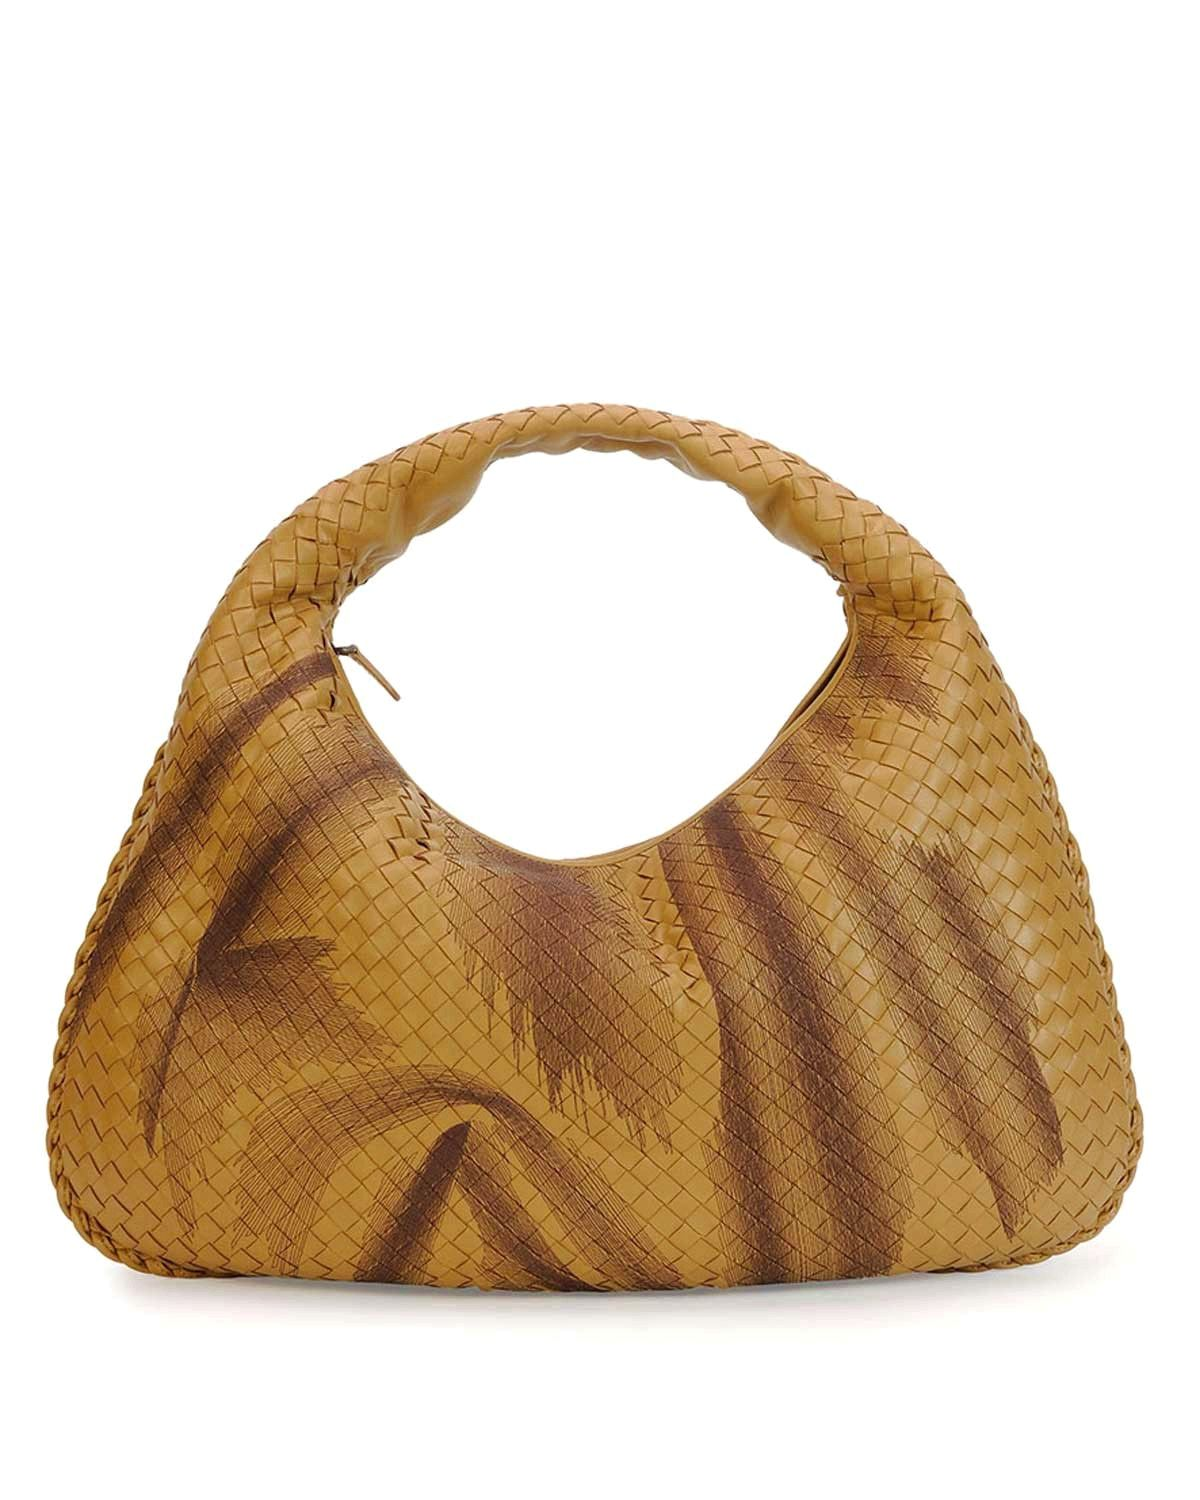 6ce0a988ec Bottega Veneta Intrecciato Large Shadow Hobo Bag Camel  Handbags ...